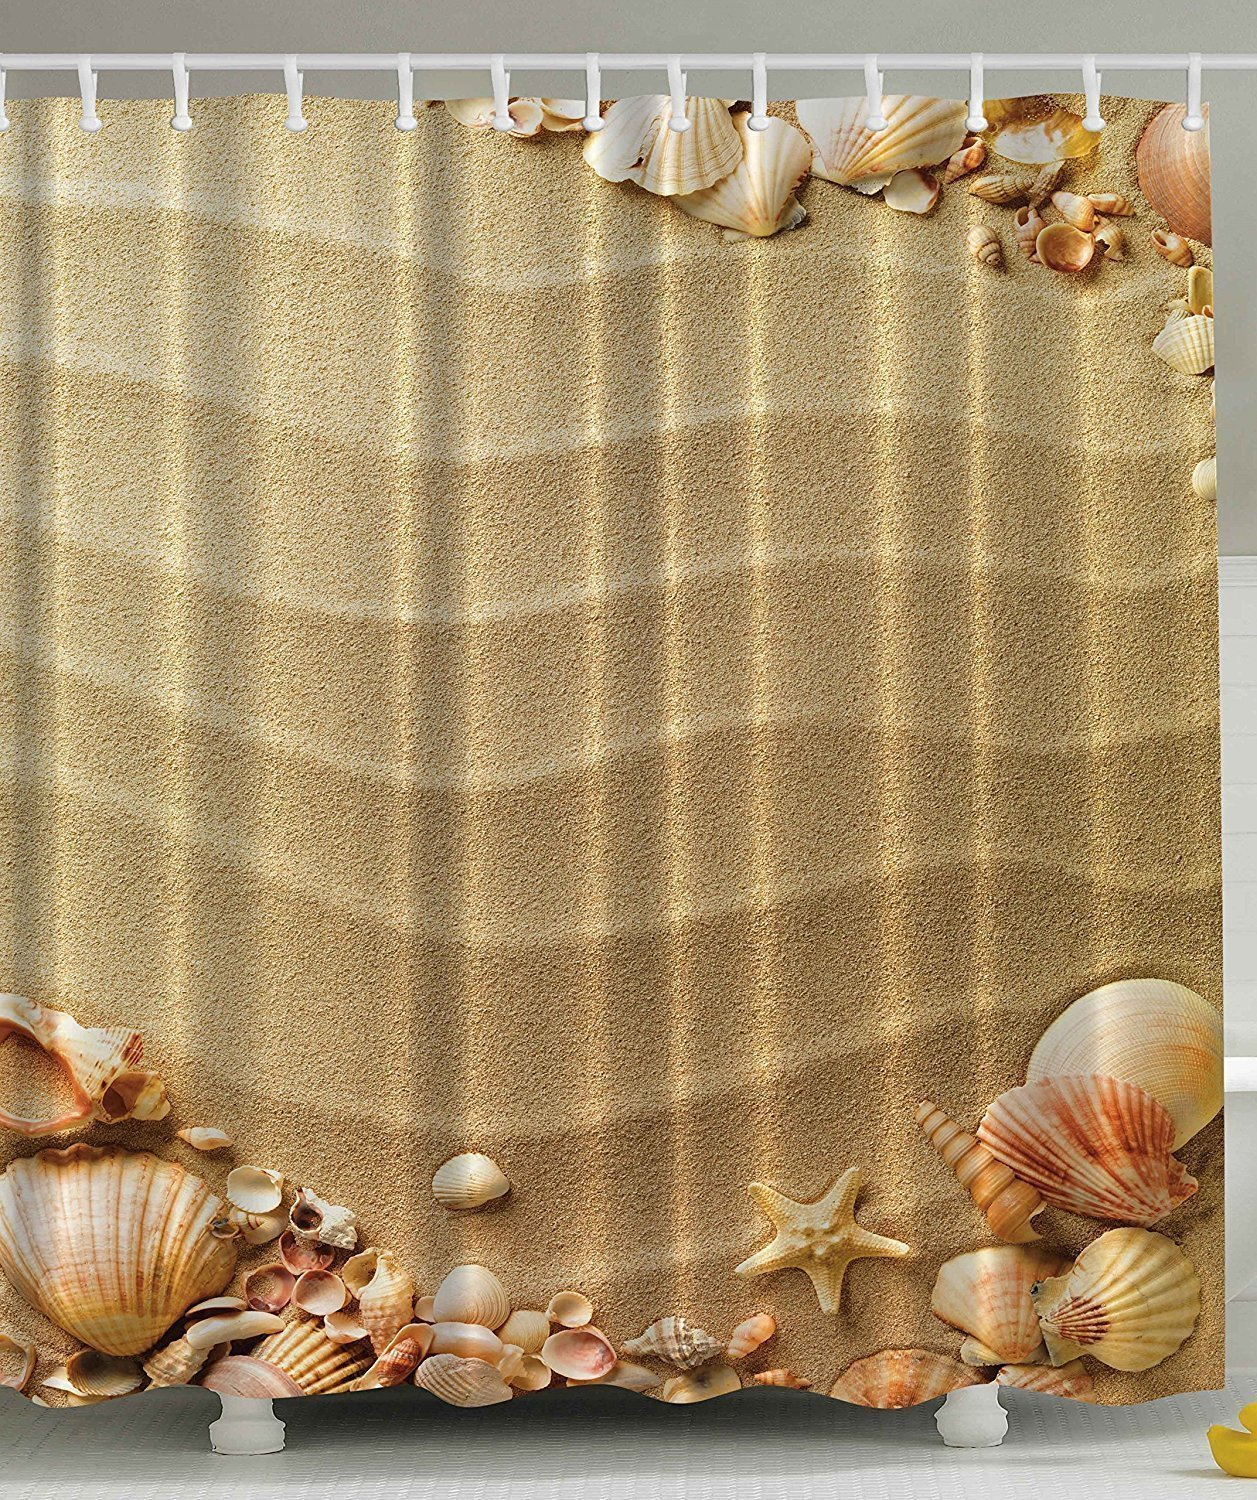 curtain length shower fresh long curtains design extra unique of liners liner awesome ideas inch extended